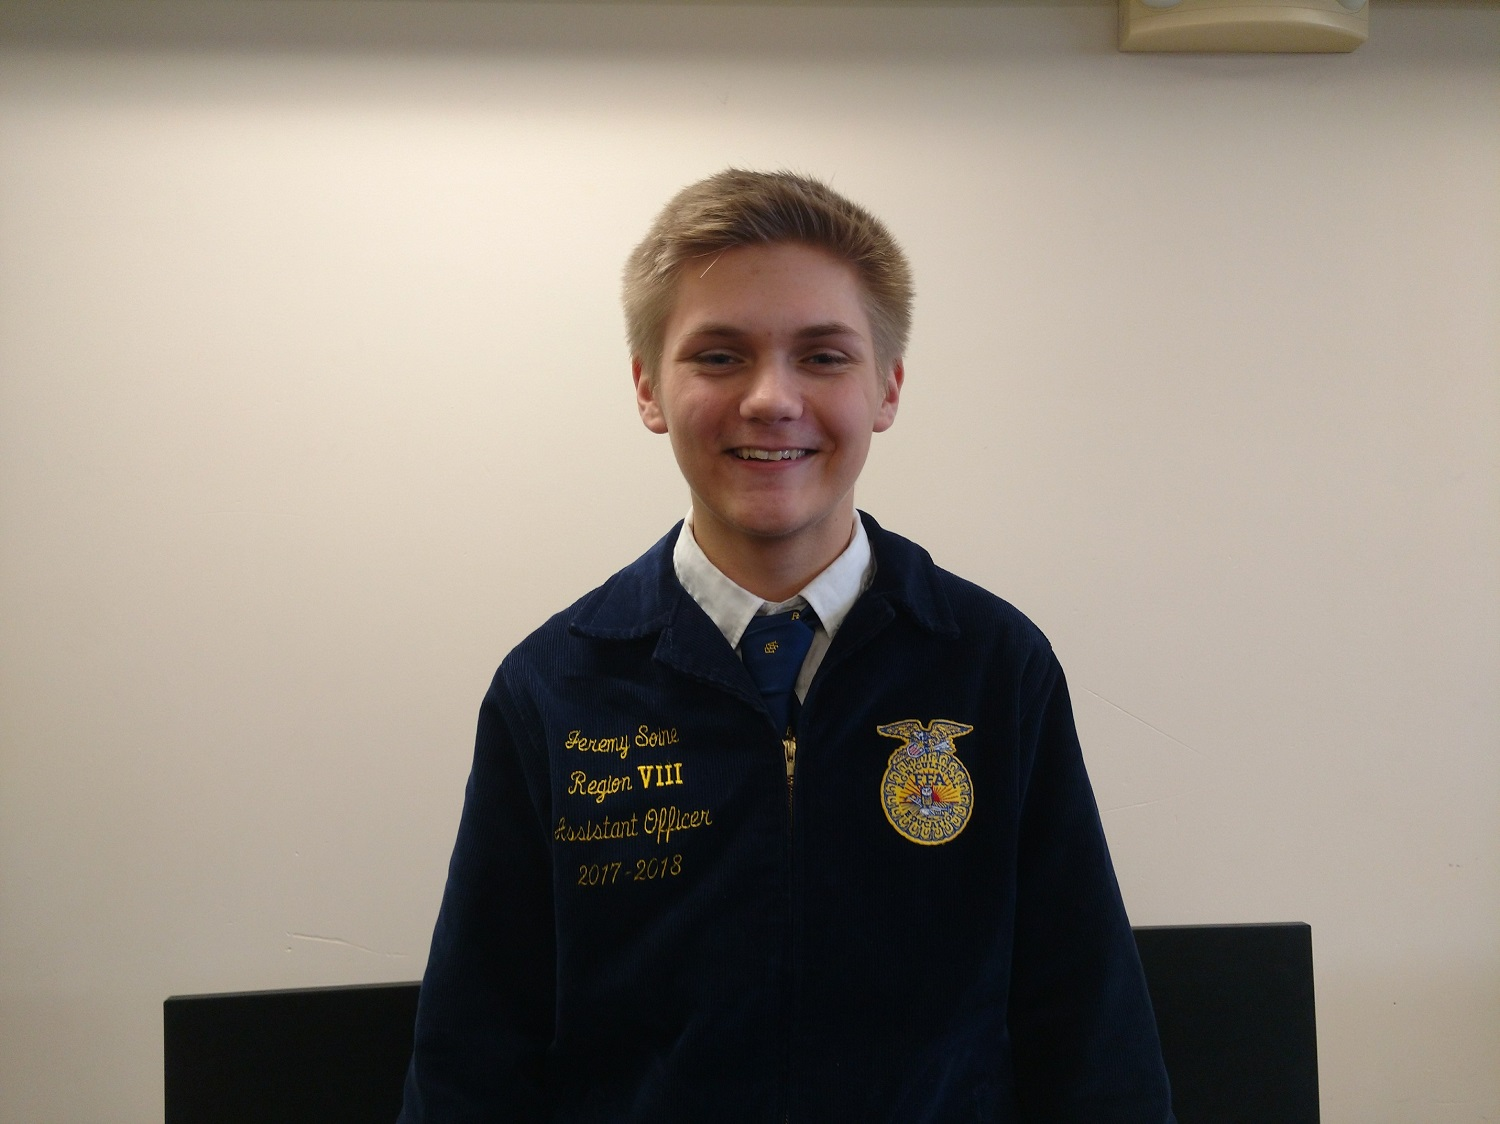 Jeremy Soine is the Cannon Falls FFA president